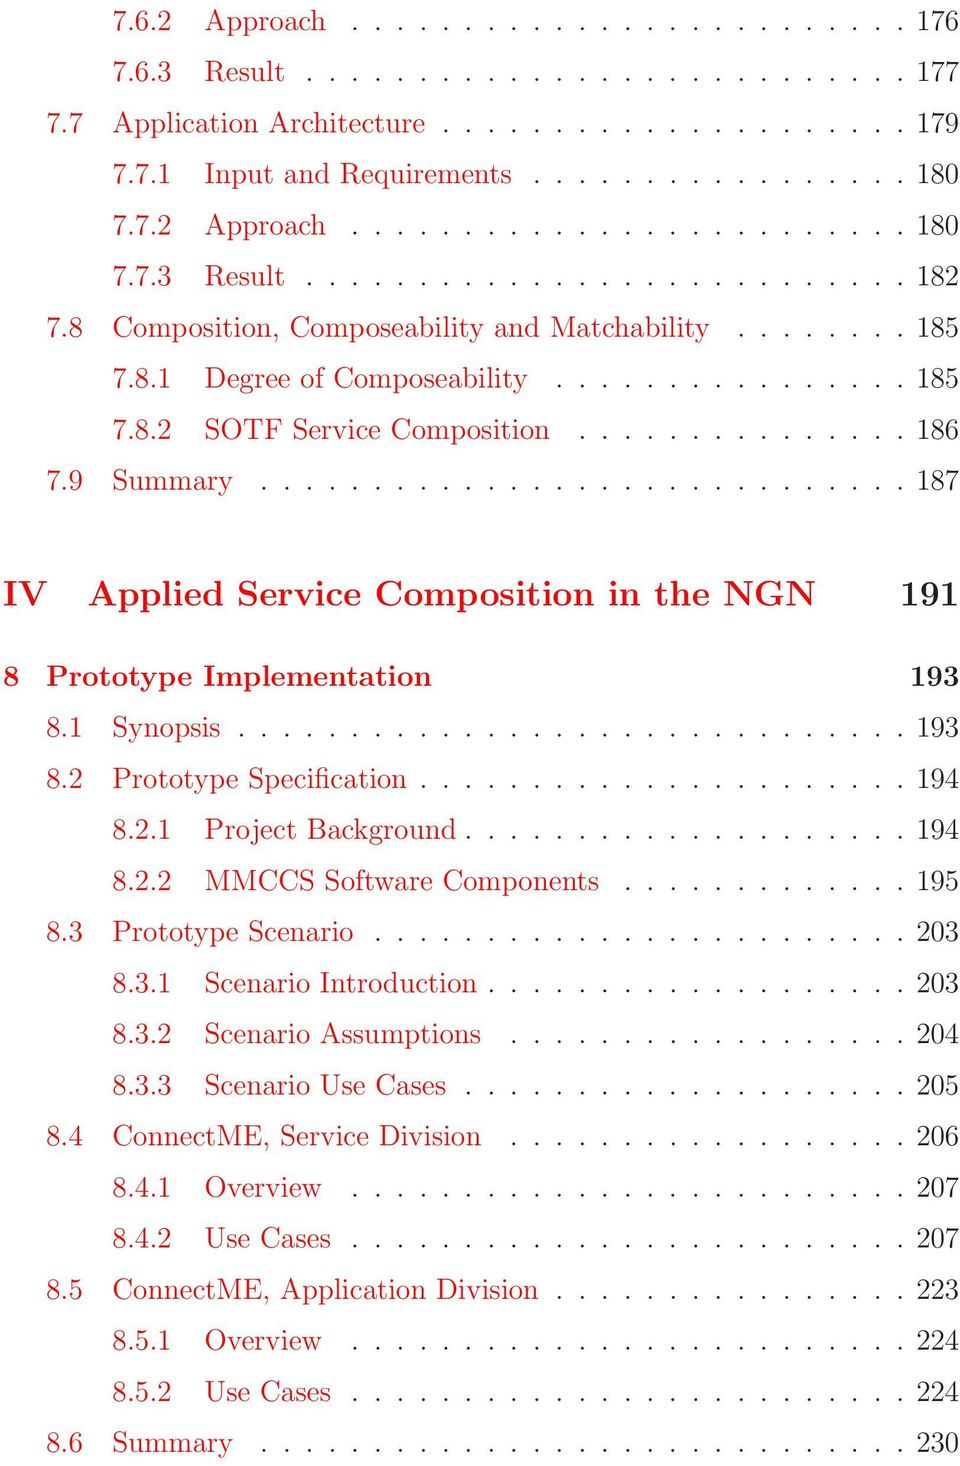 ............................ 187 IV Applied Service Composition in the NGN 191 8 Prototype Implementation 193 8.1 Synopsis.............................. 193 8.2 Prototype Specification...................... 194 8.